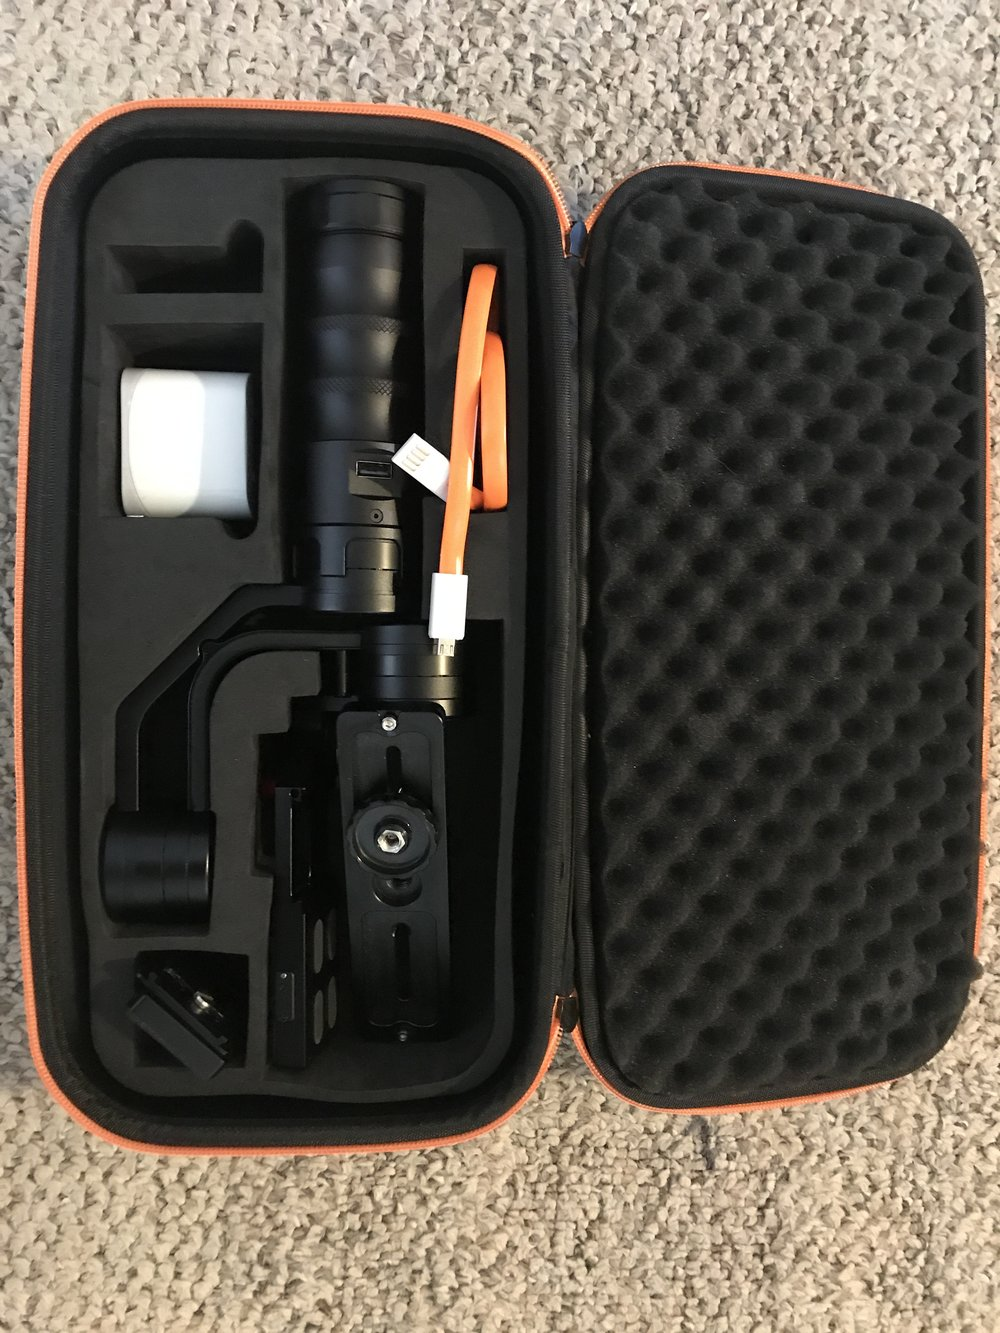 $250 GREAT CONDITION Ikan MS PRO Beholder 3 AXIS Motorized Gimbal  - includes Lithion Ion battery and protective CaseRETAIL: $599